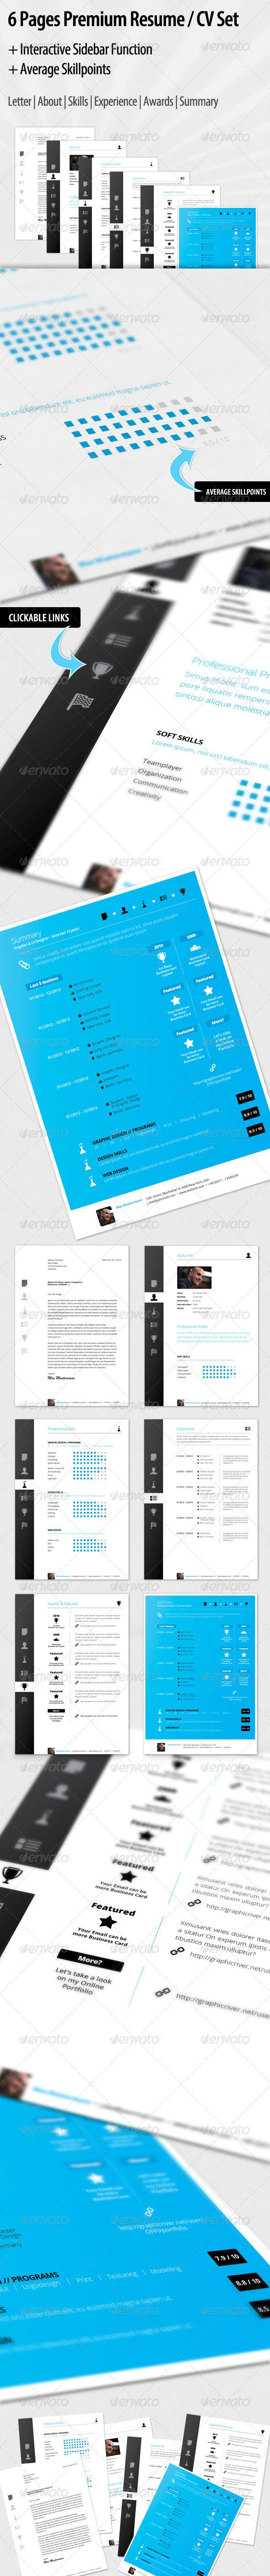 interactive clickable premium resume cv set curriculum resume interactive clickable premium resume cv set template indesign indd here